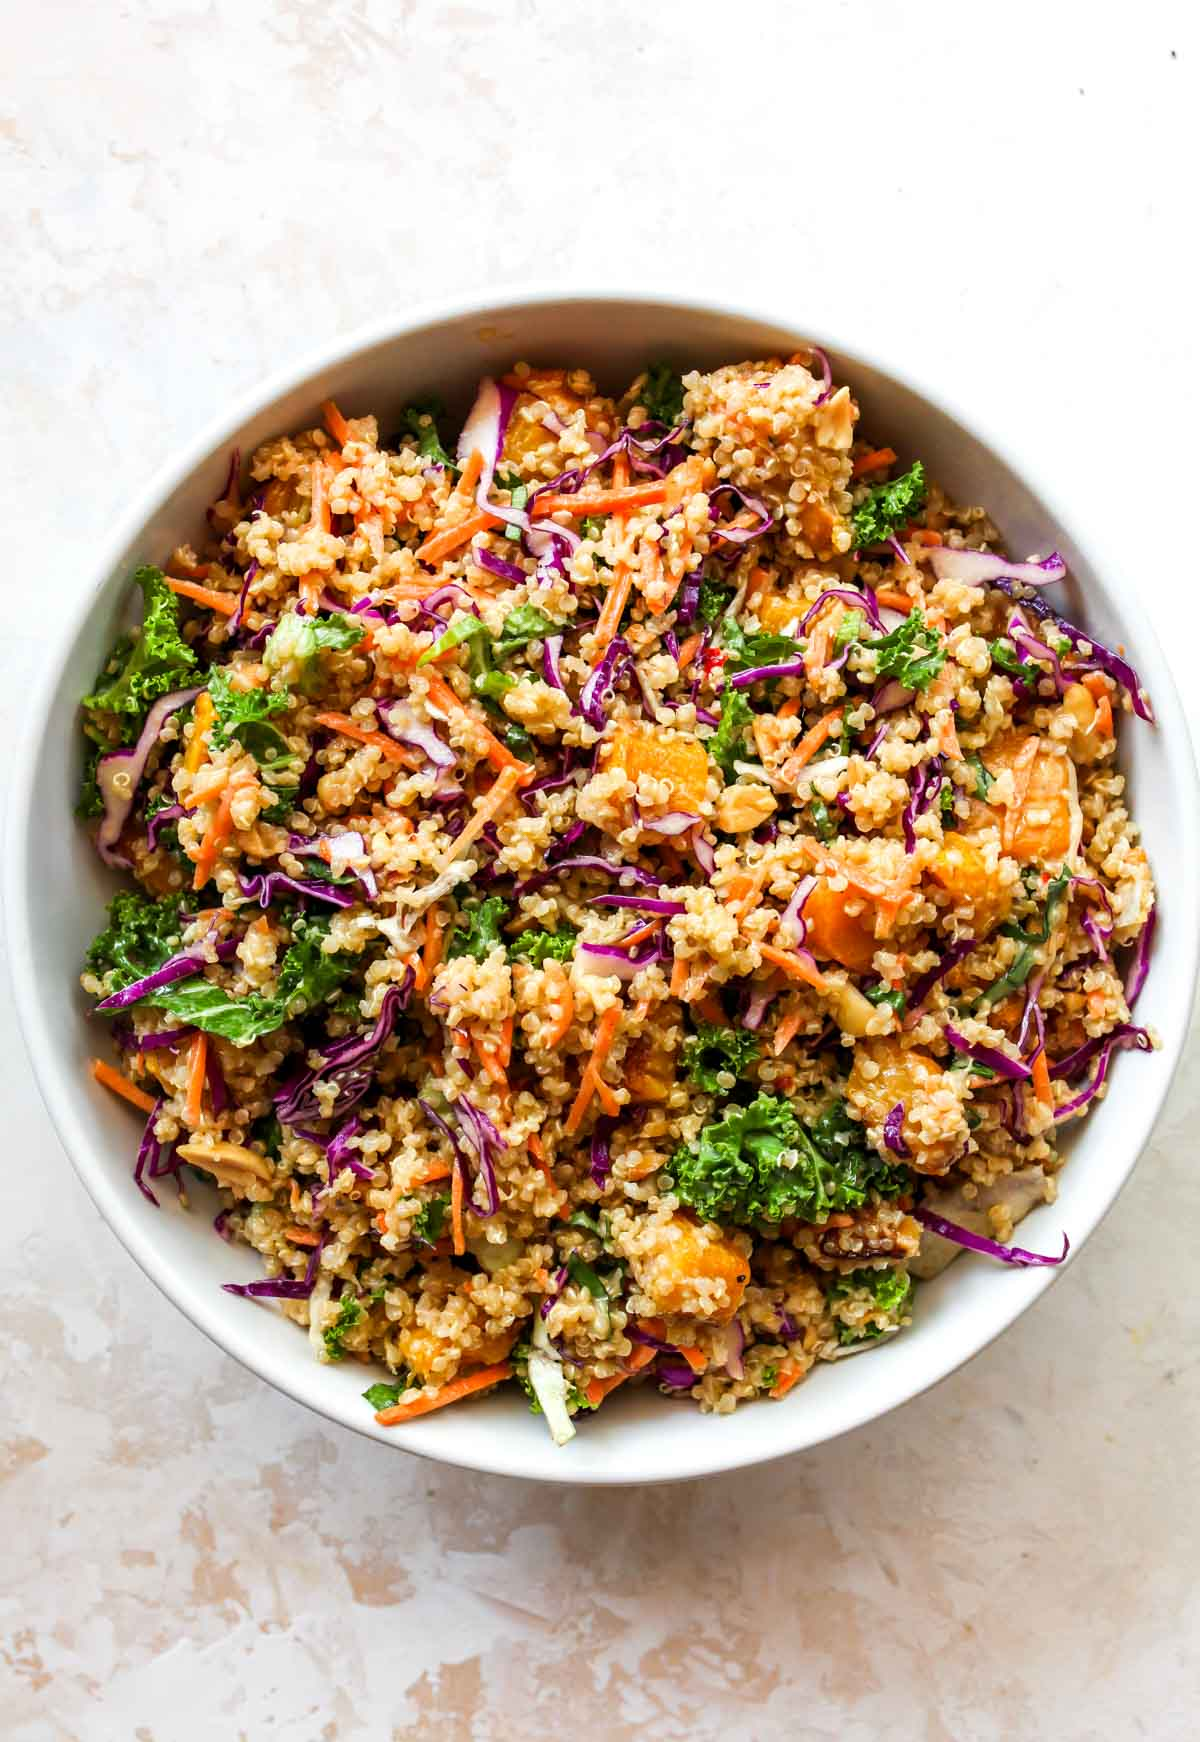 Butternut squash quinoa salad mixed together in a white bowl